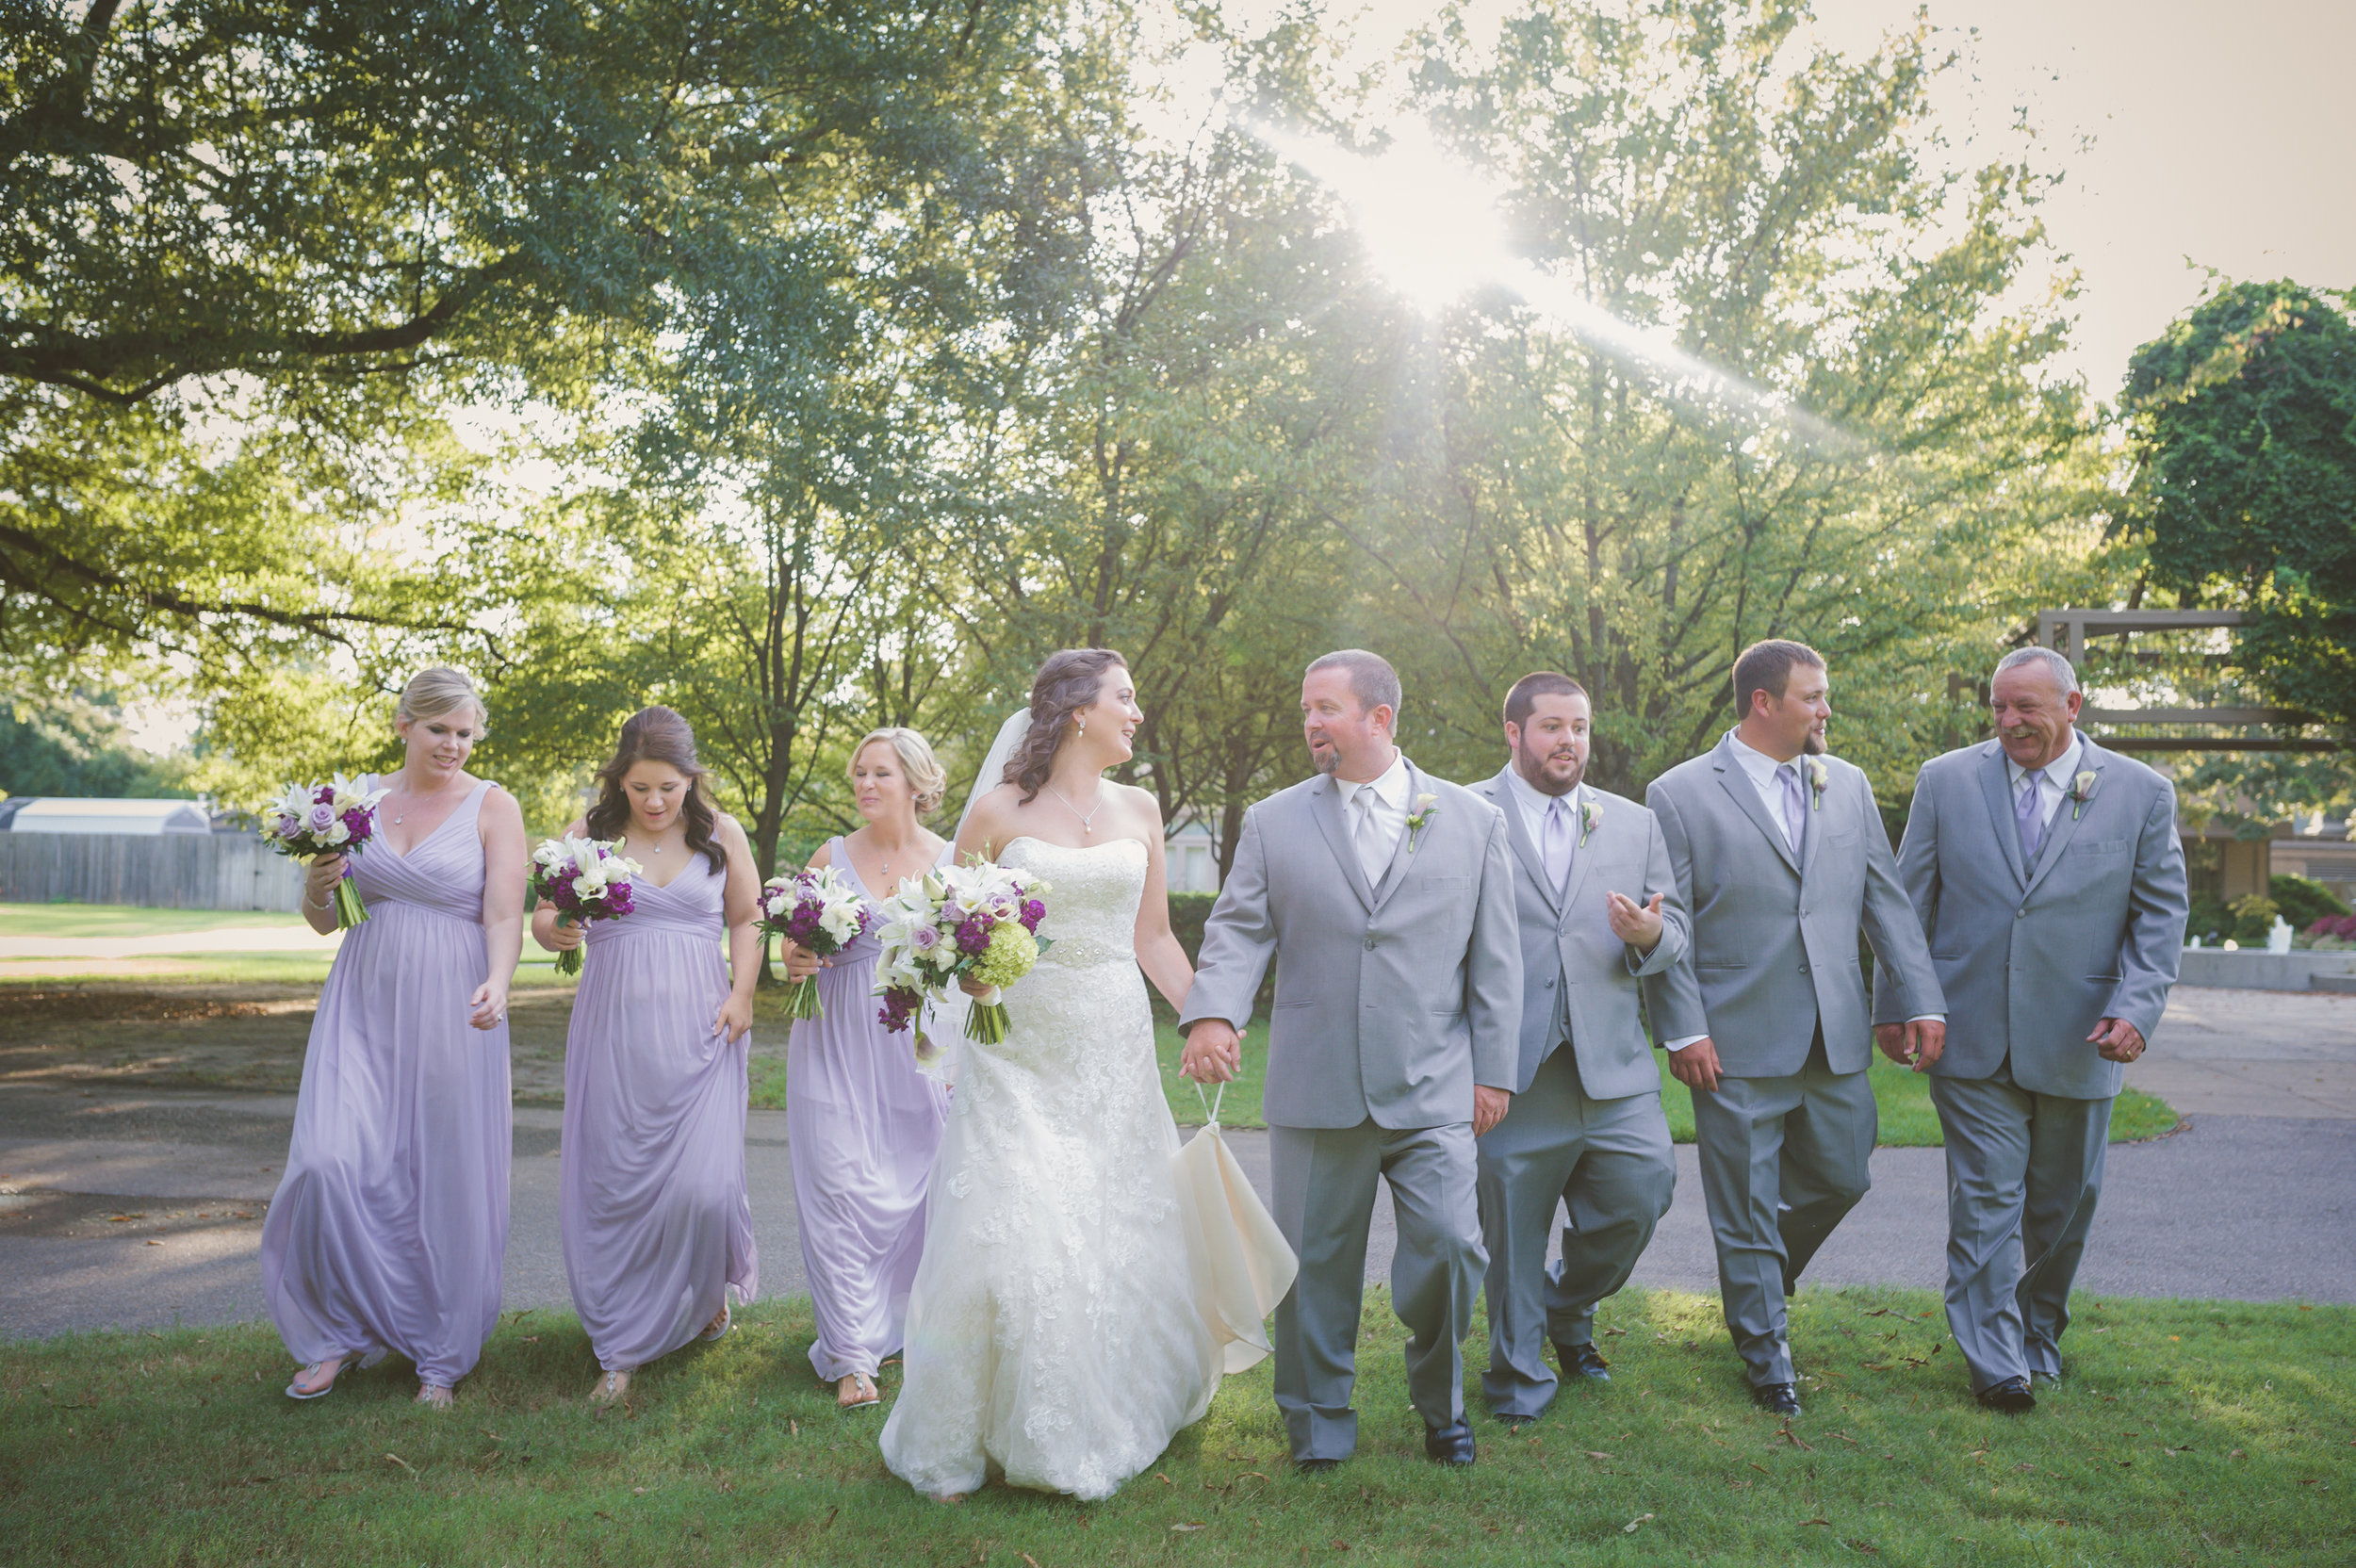 memphis-botanic-garden-wedding_sarah-morris-photography_draffin (19).JPG